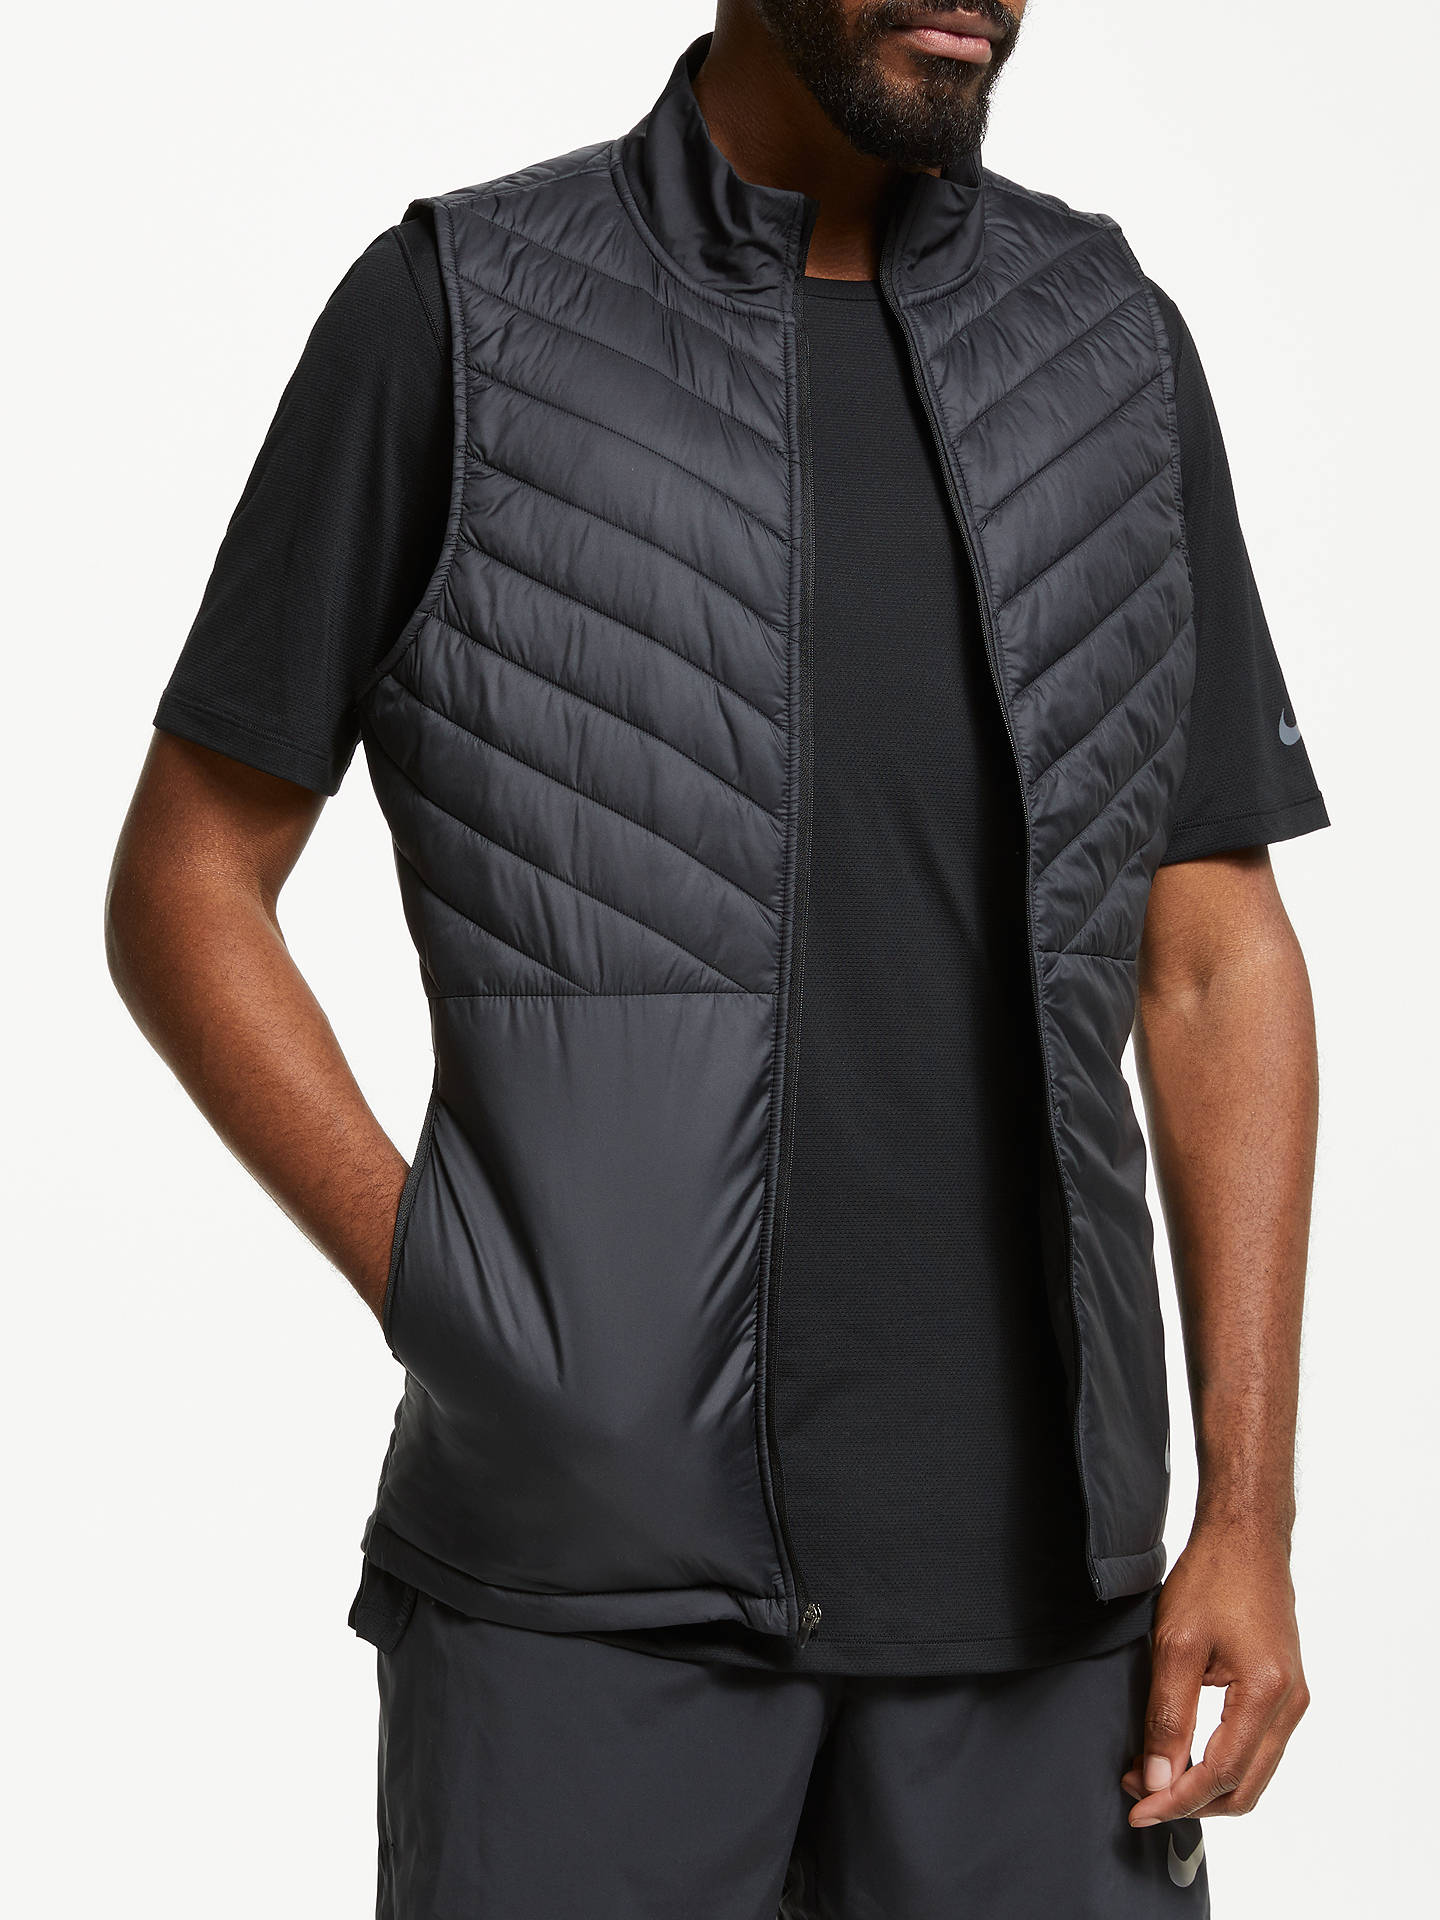 87bda0b59682 Buy Nike AeroLayer Men s Running Vest